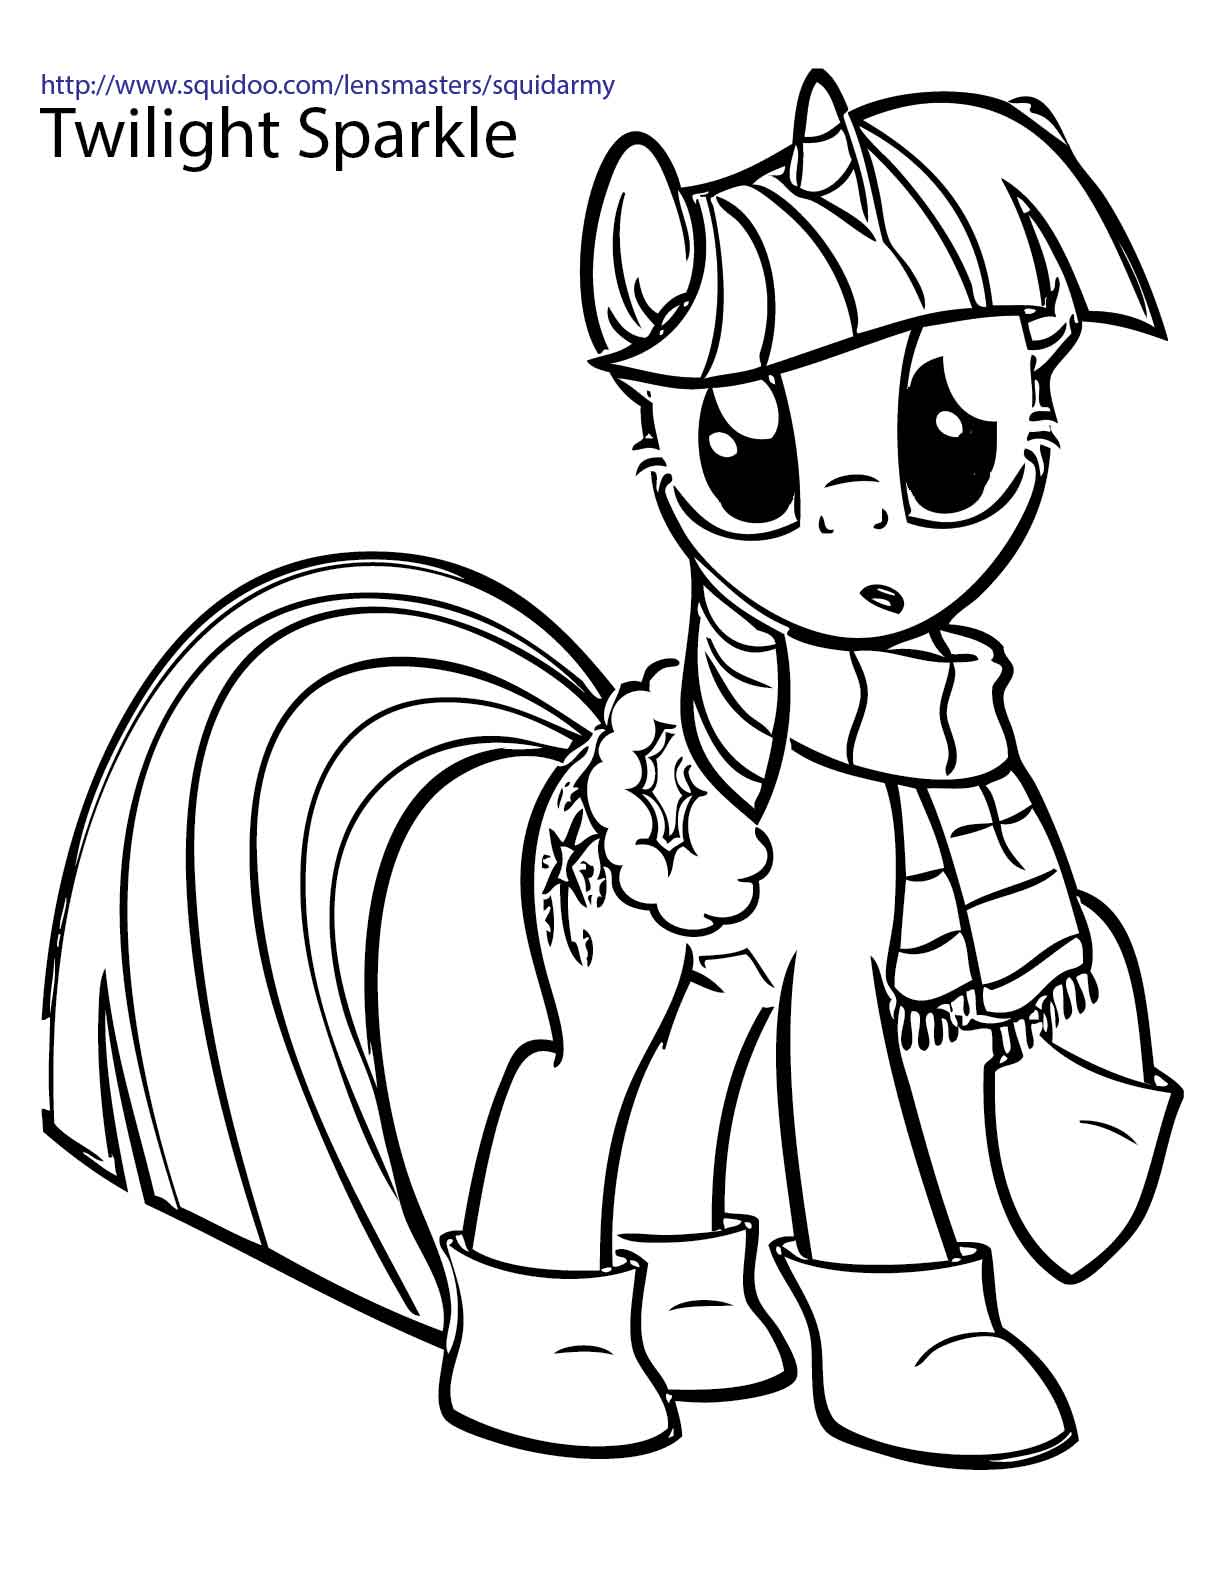 1224x1584 My Little Pony Twilight Sparkle Coloring Pages